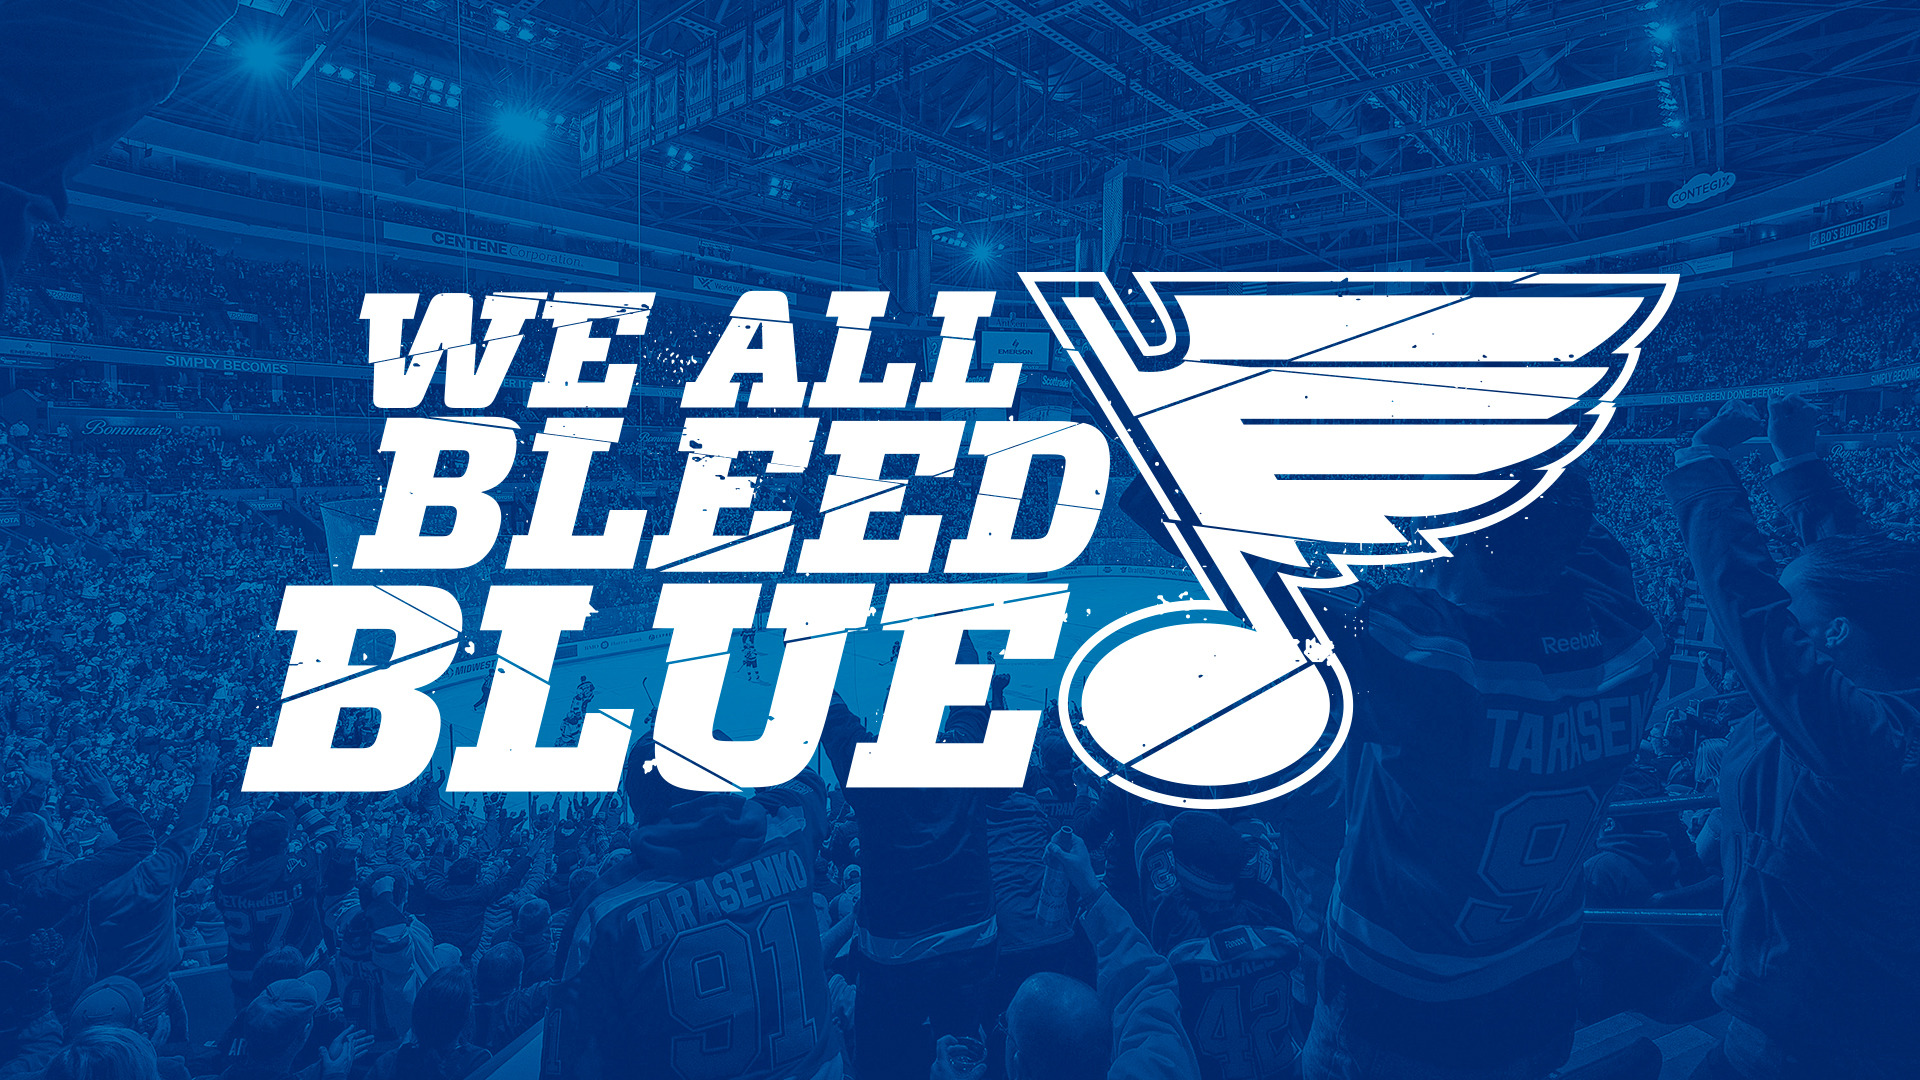 Free Download Wallpaperwiki St Louis Blues Images Hd Pic Wpe003988